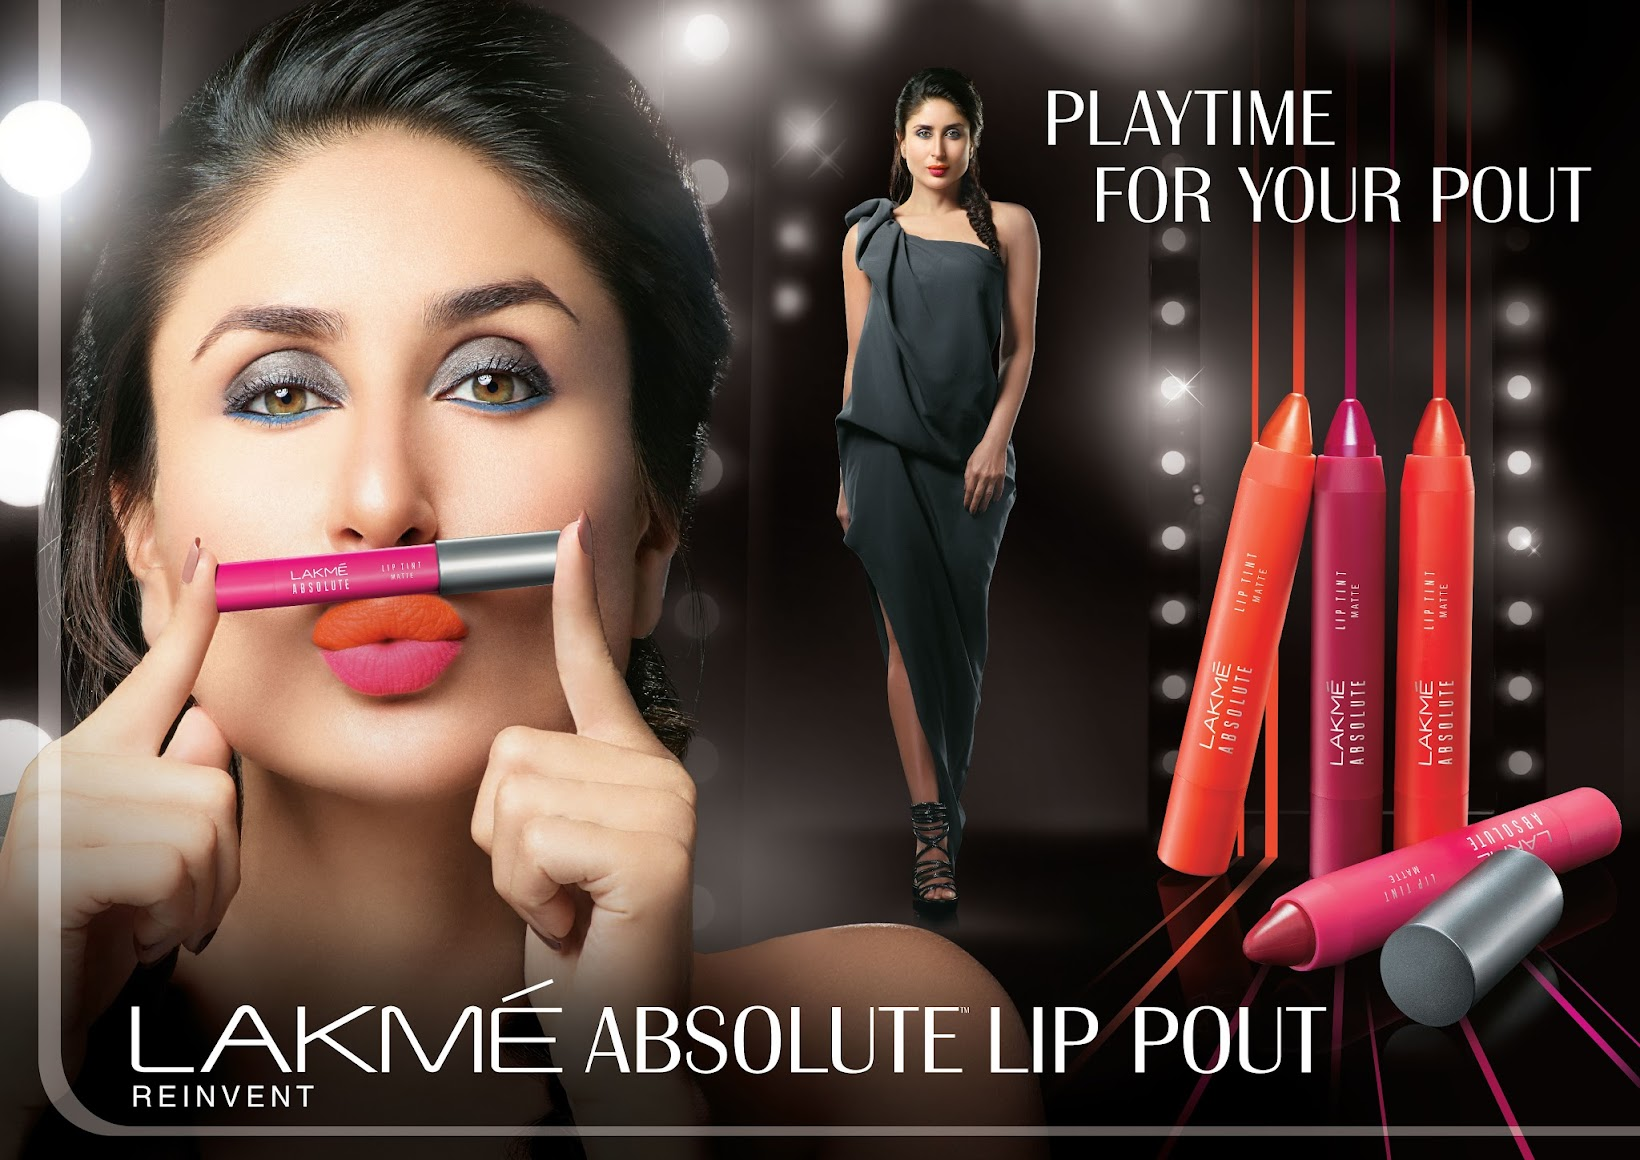 It's playtime for your pout with Lakmé Absolute Lip Pout- Press Release, Lakme Fashion Week, Indian beauty blogger